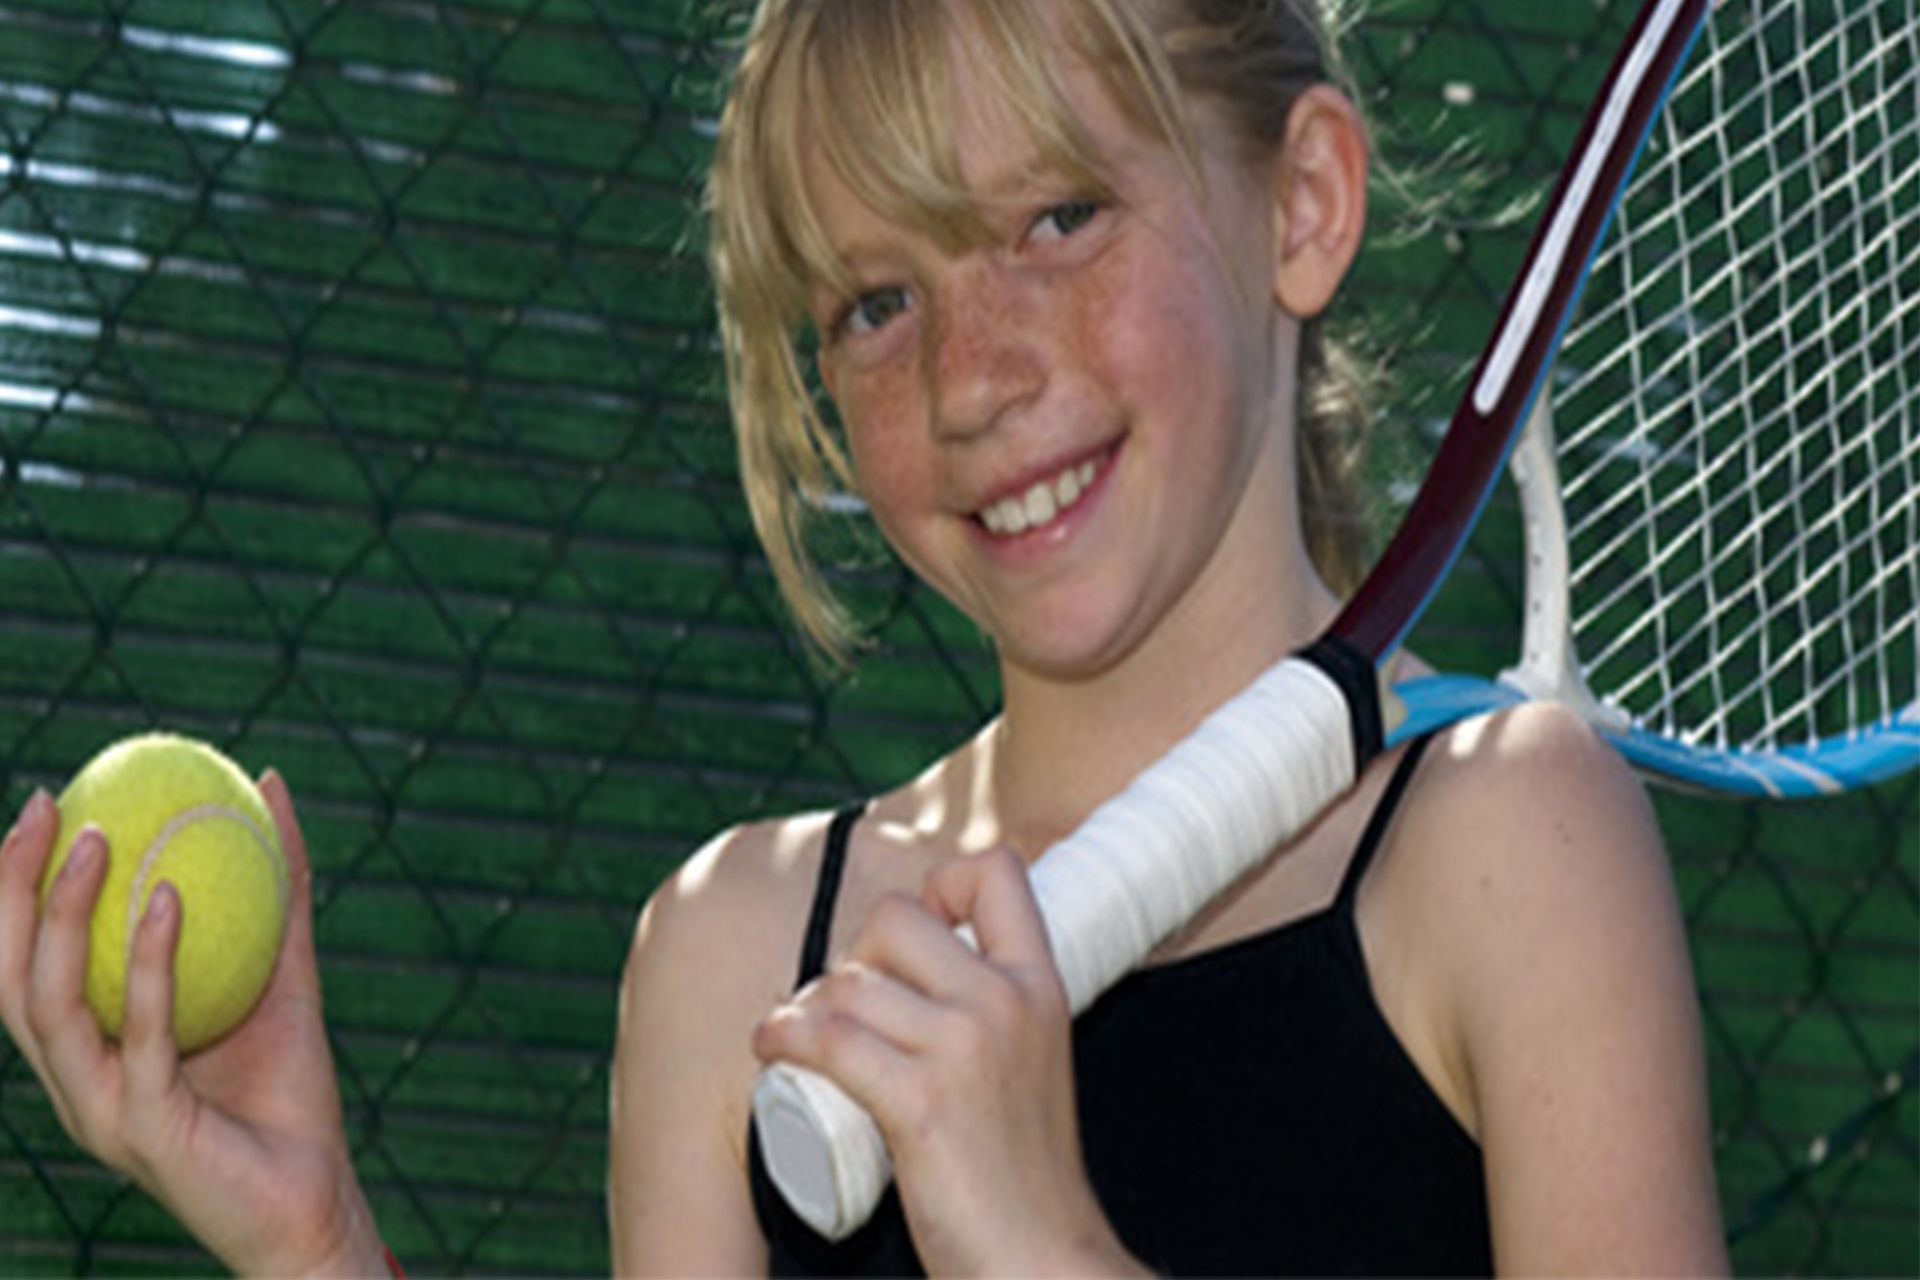 young girl with tennis racket and tennis ball